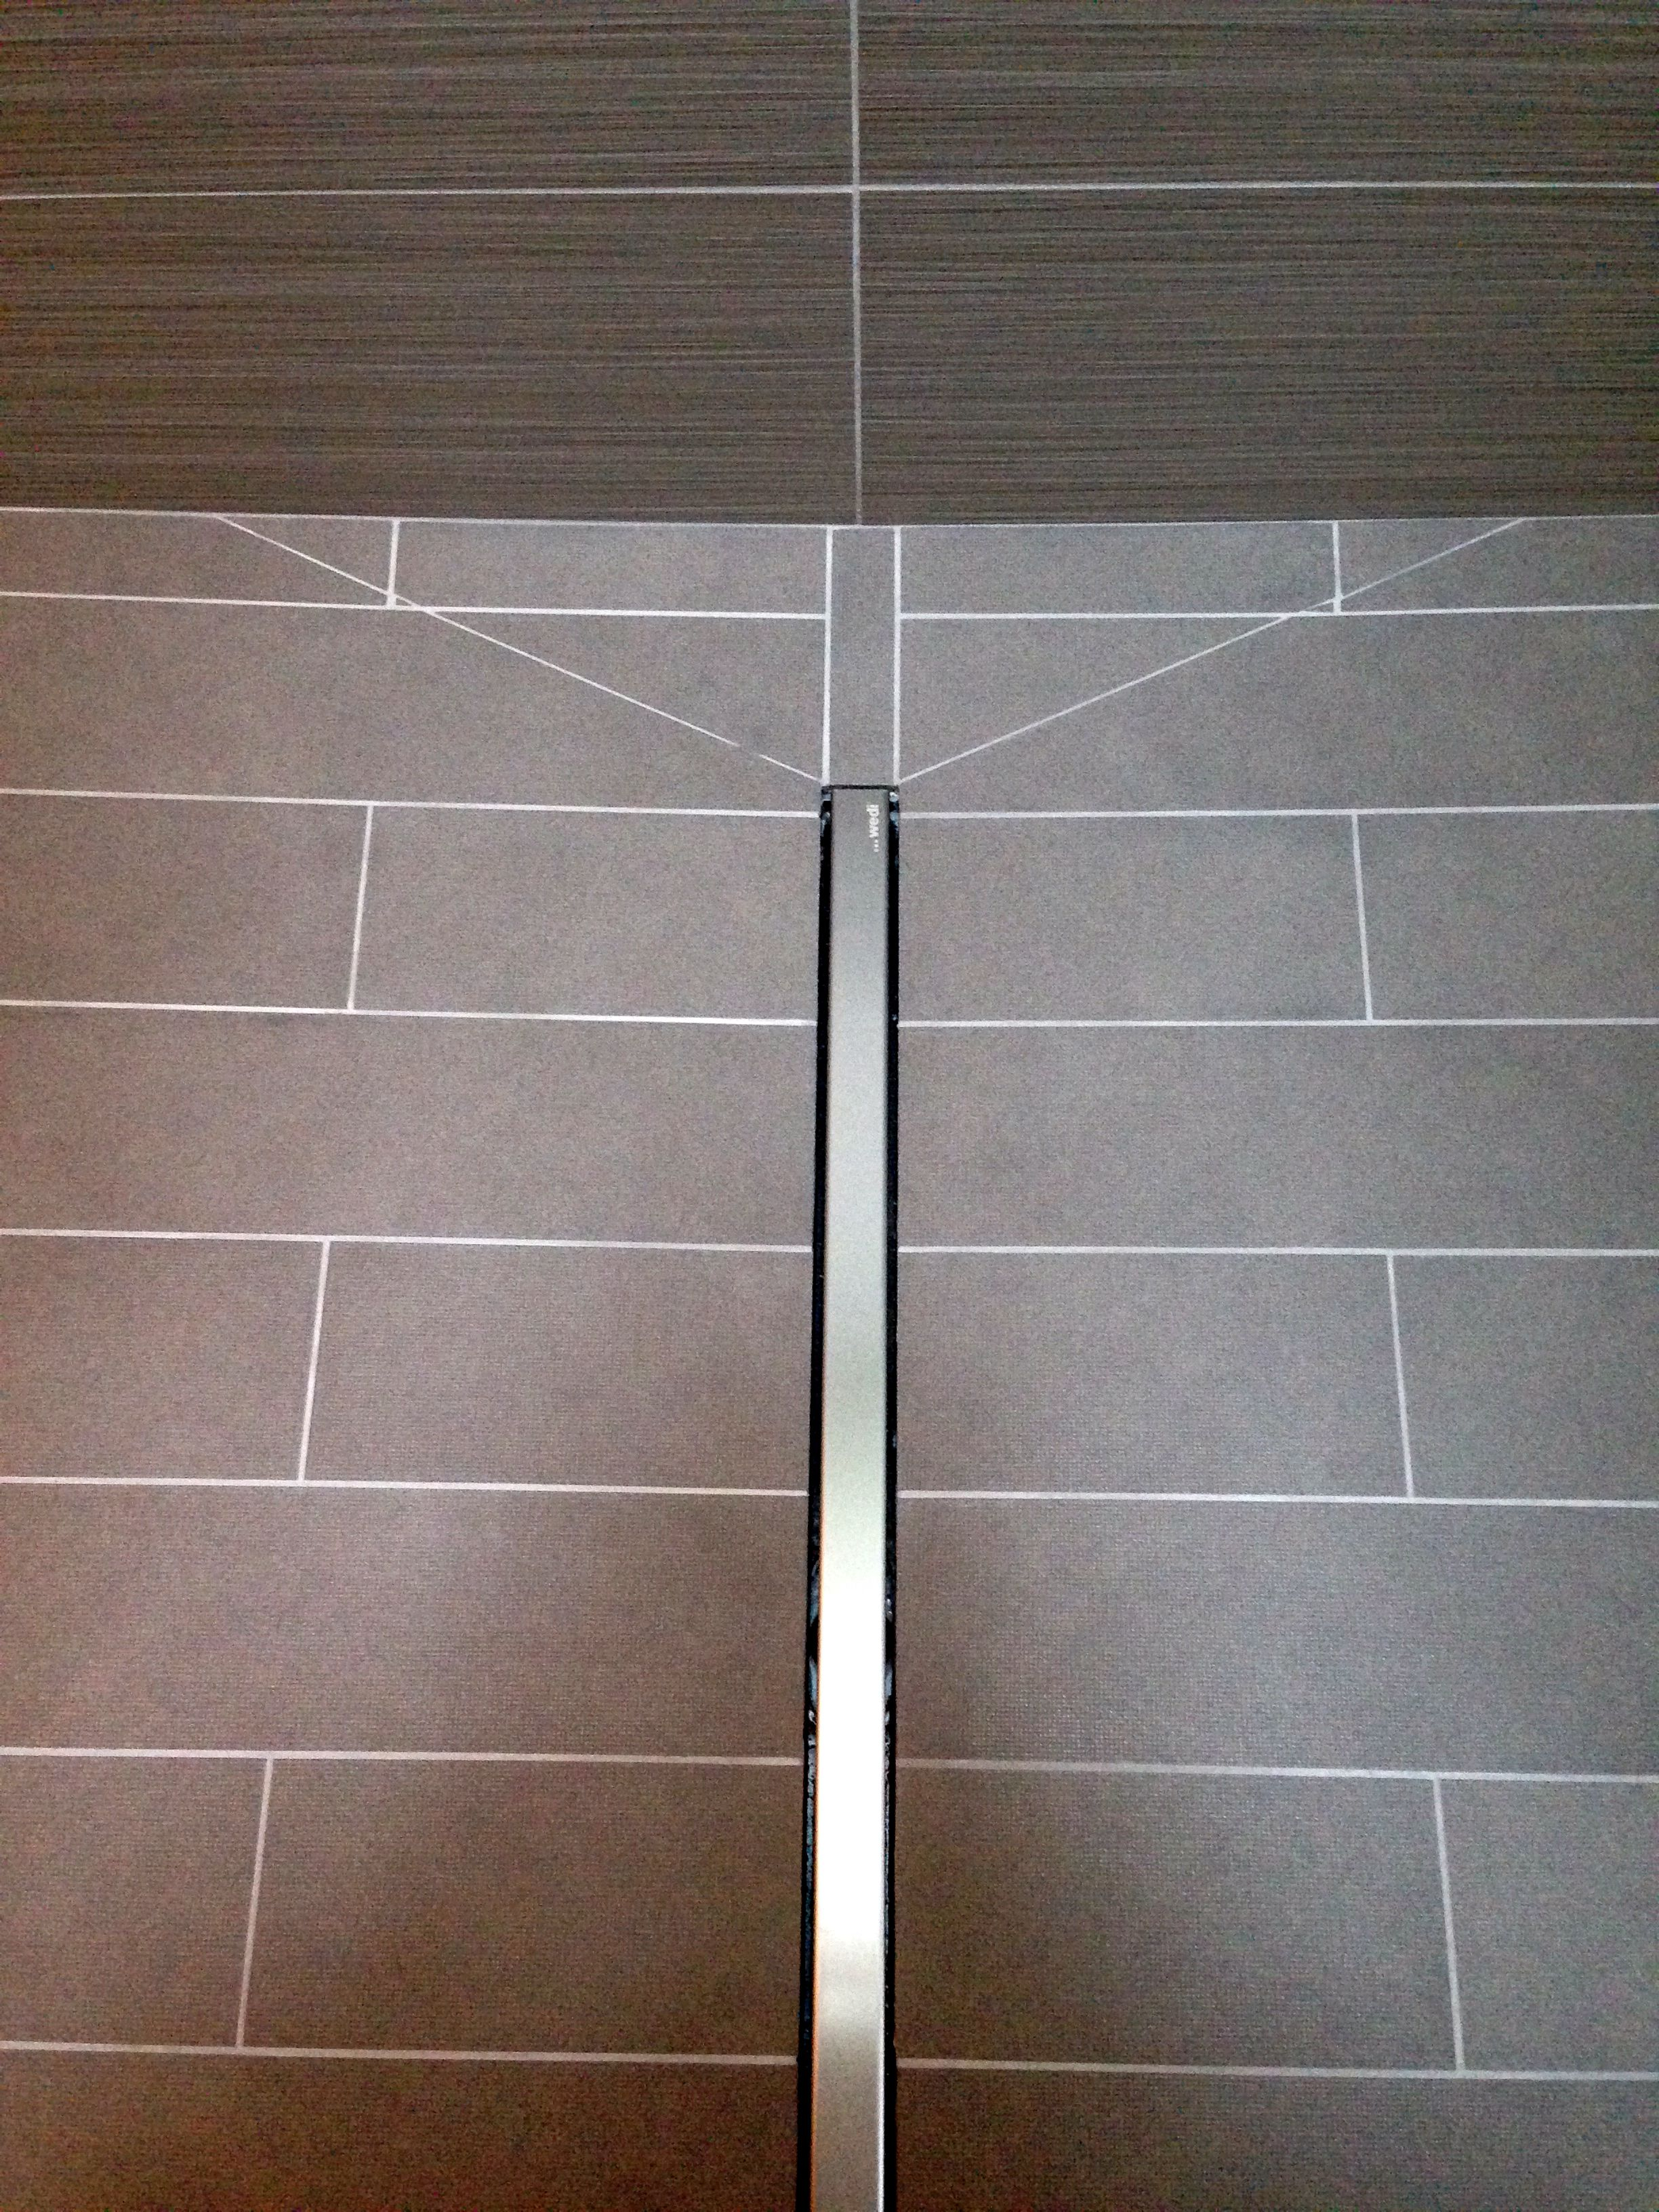 Tile Coursing Maintained Through Side Slope Of Linear Drain Linear Drain Drain Tile Tile Work